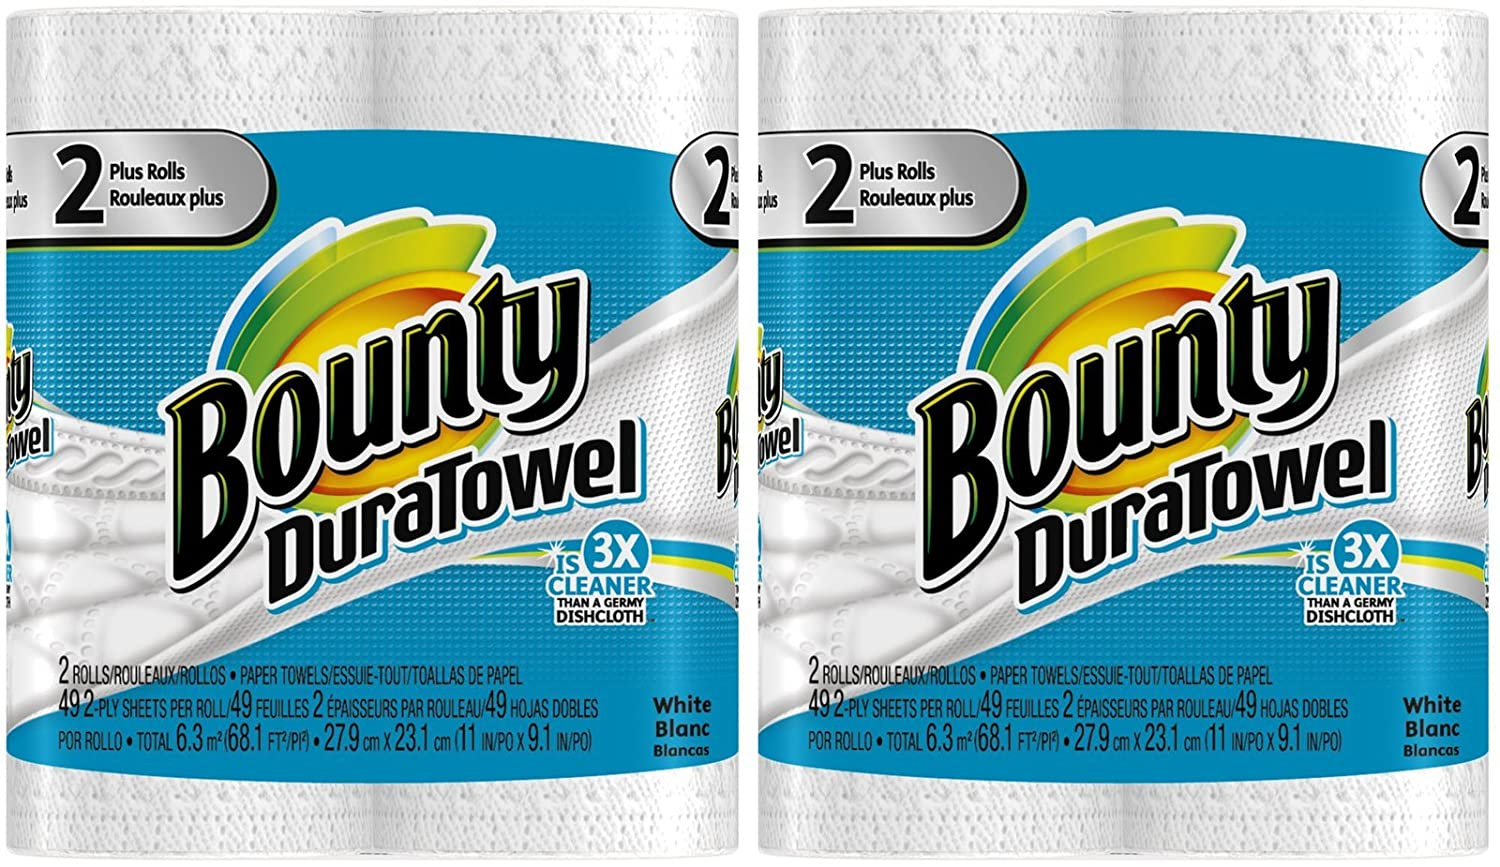 Amazon.com: Bounty DuraTowel Paper Towels, King Roll - 4 pk: Health & Personal Care